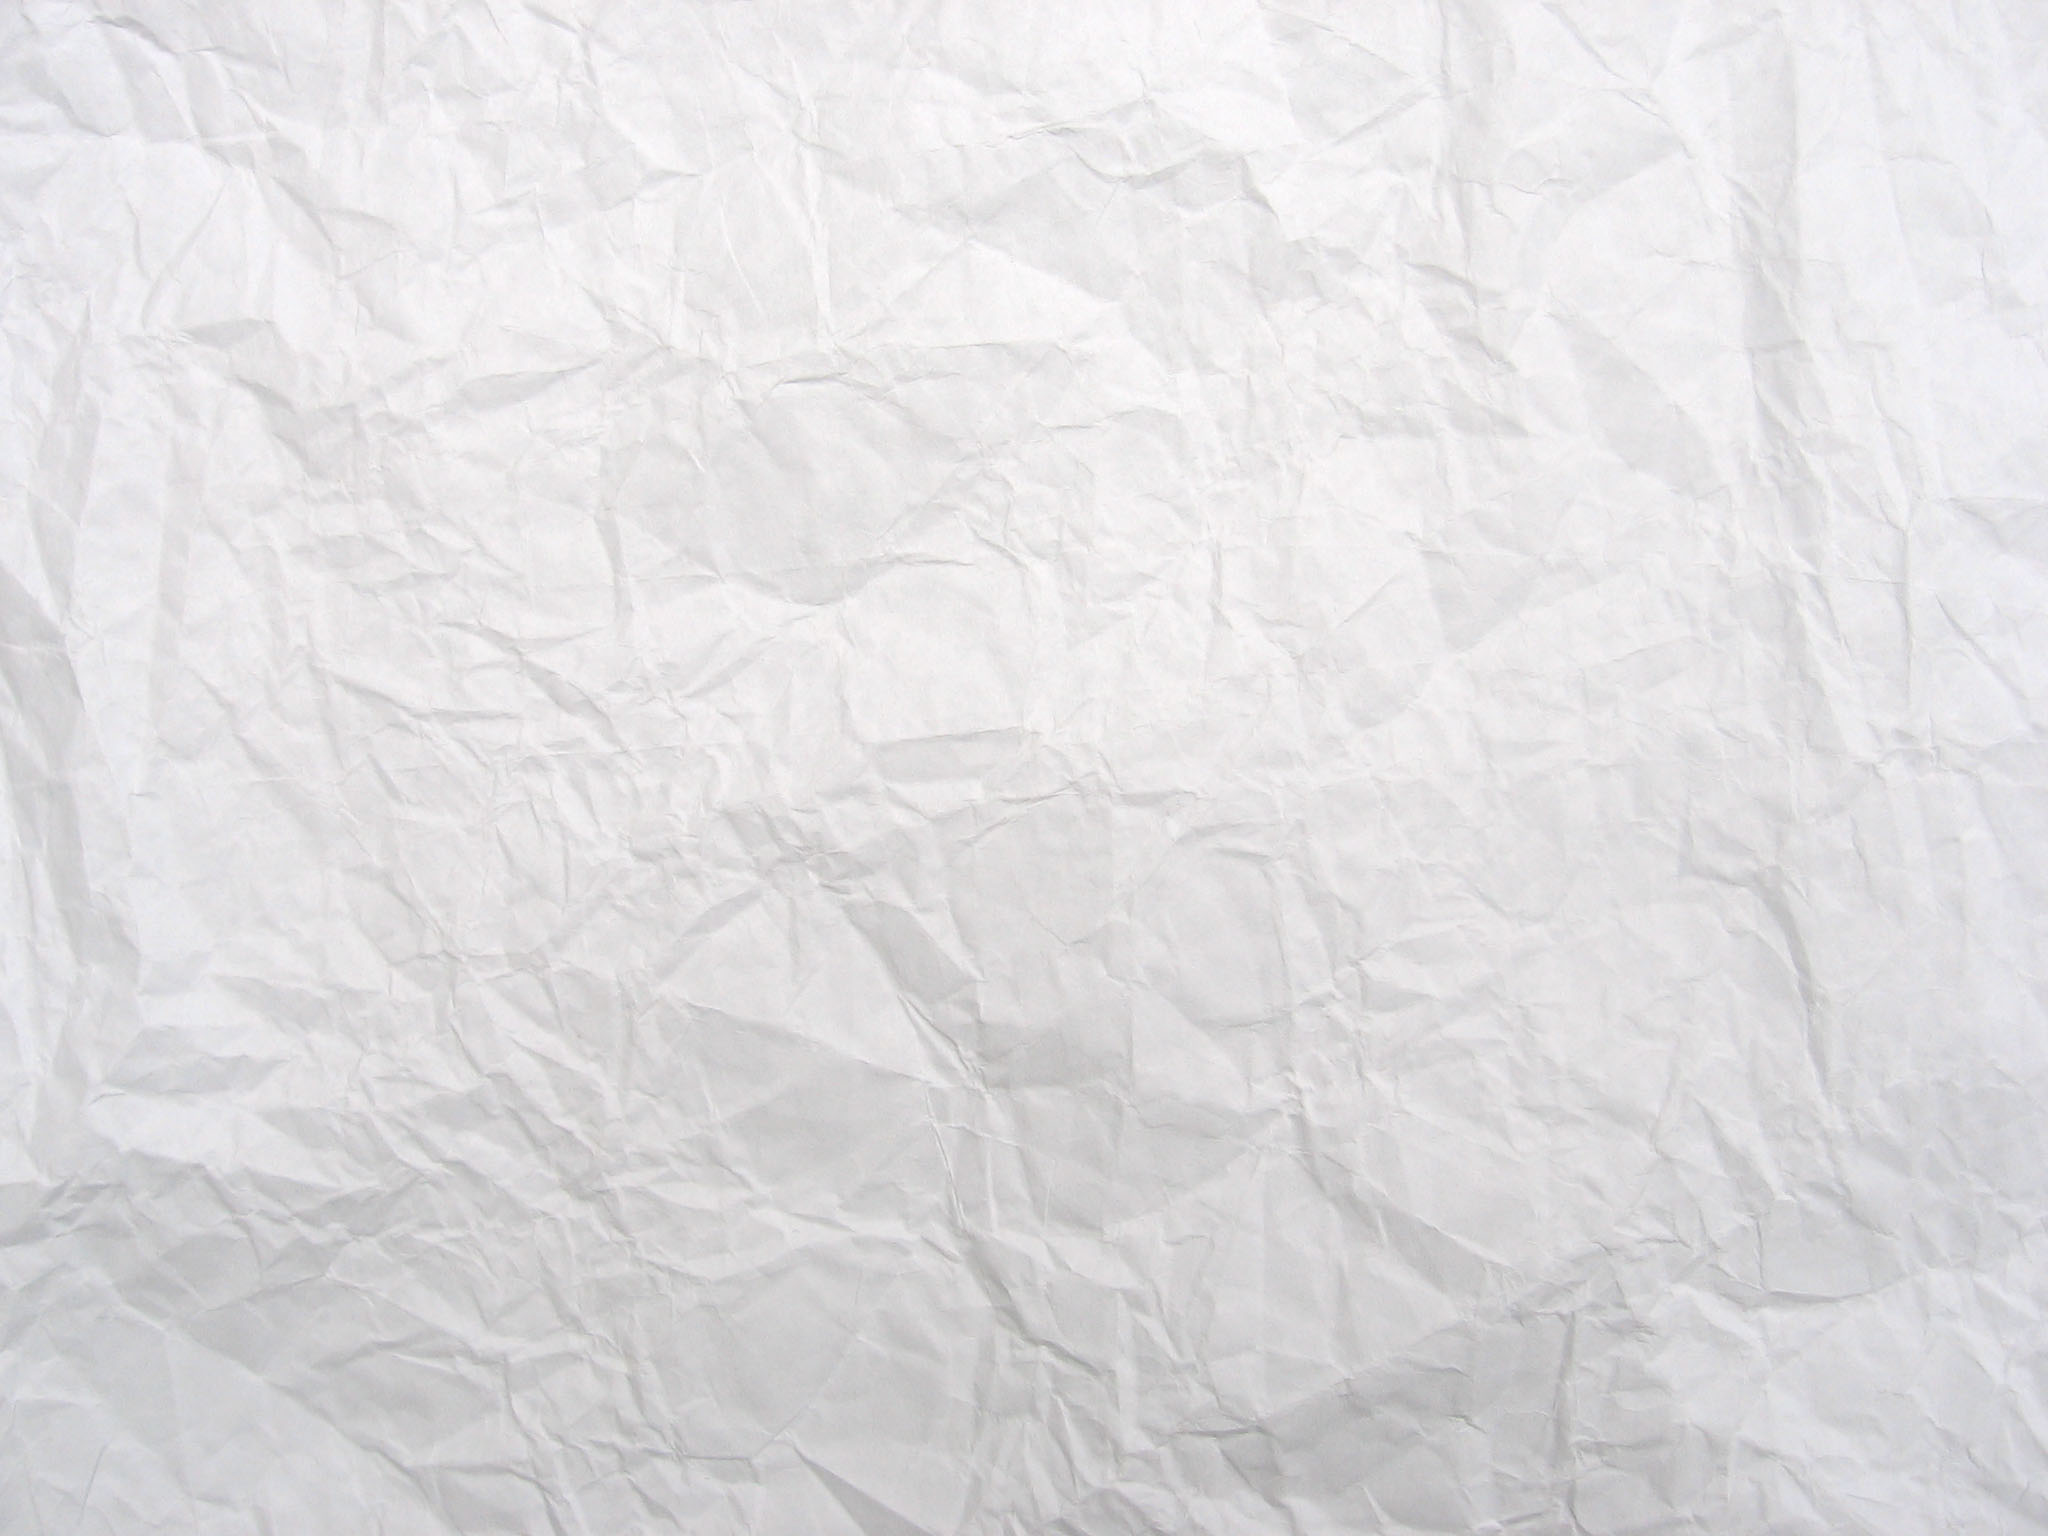 crumpled_white_paper_texture_by_melemel